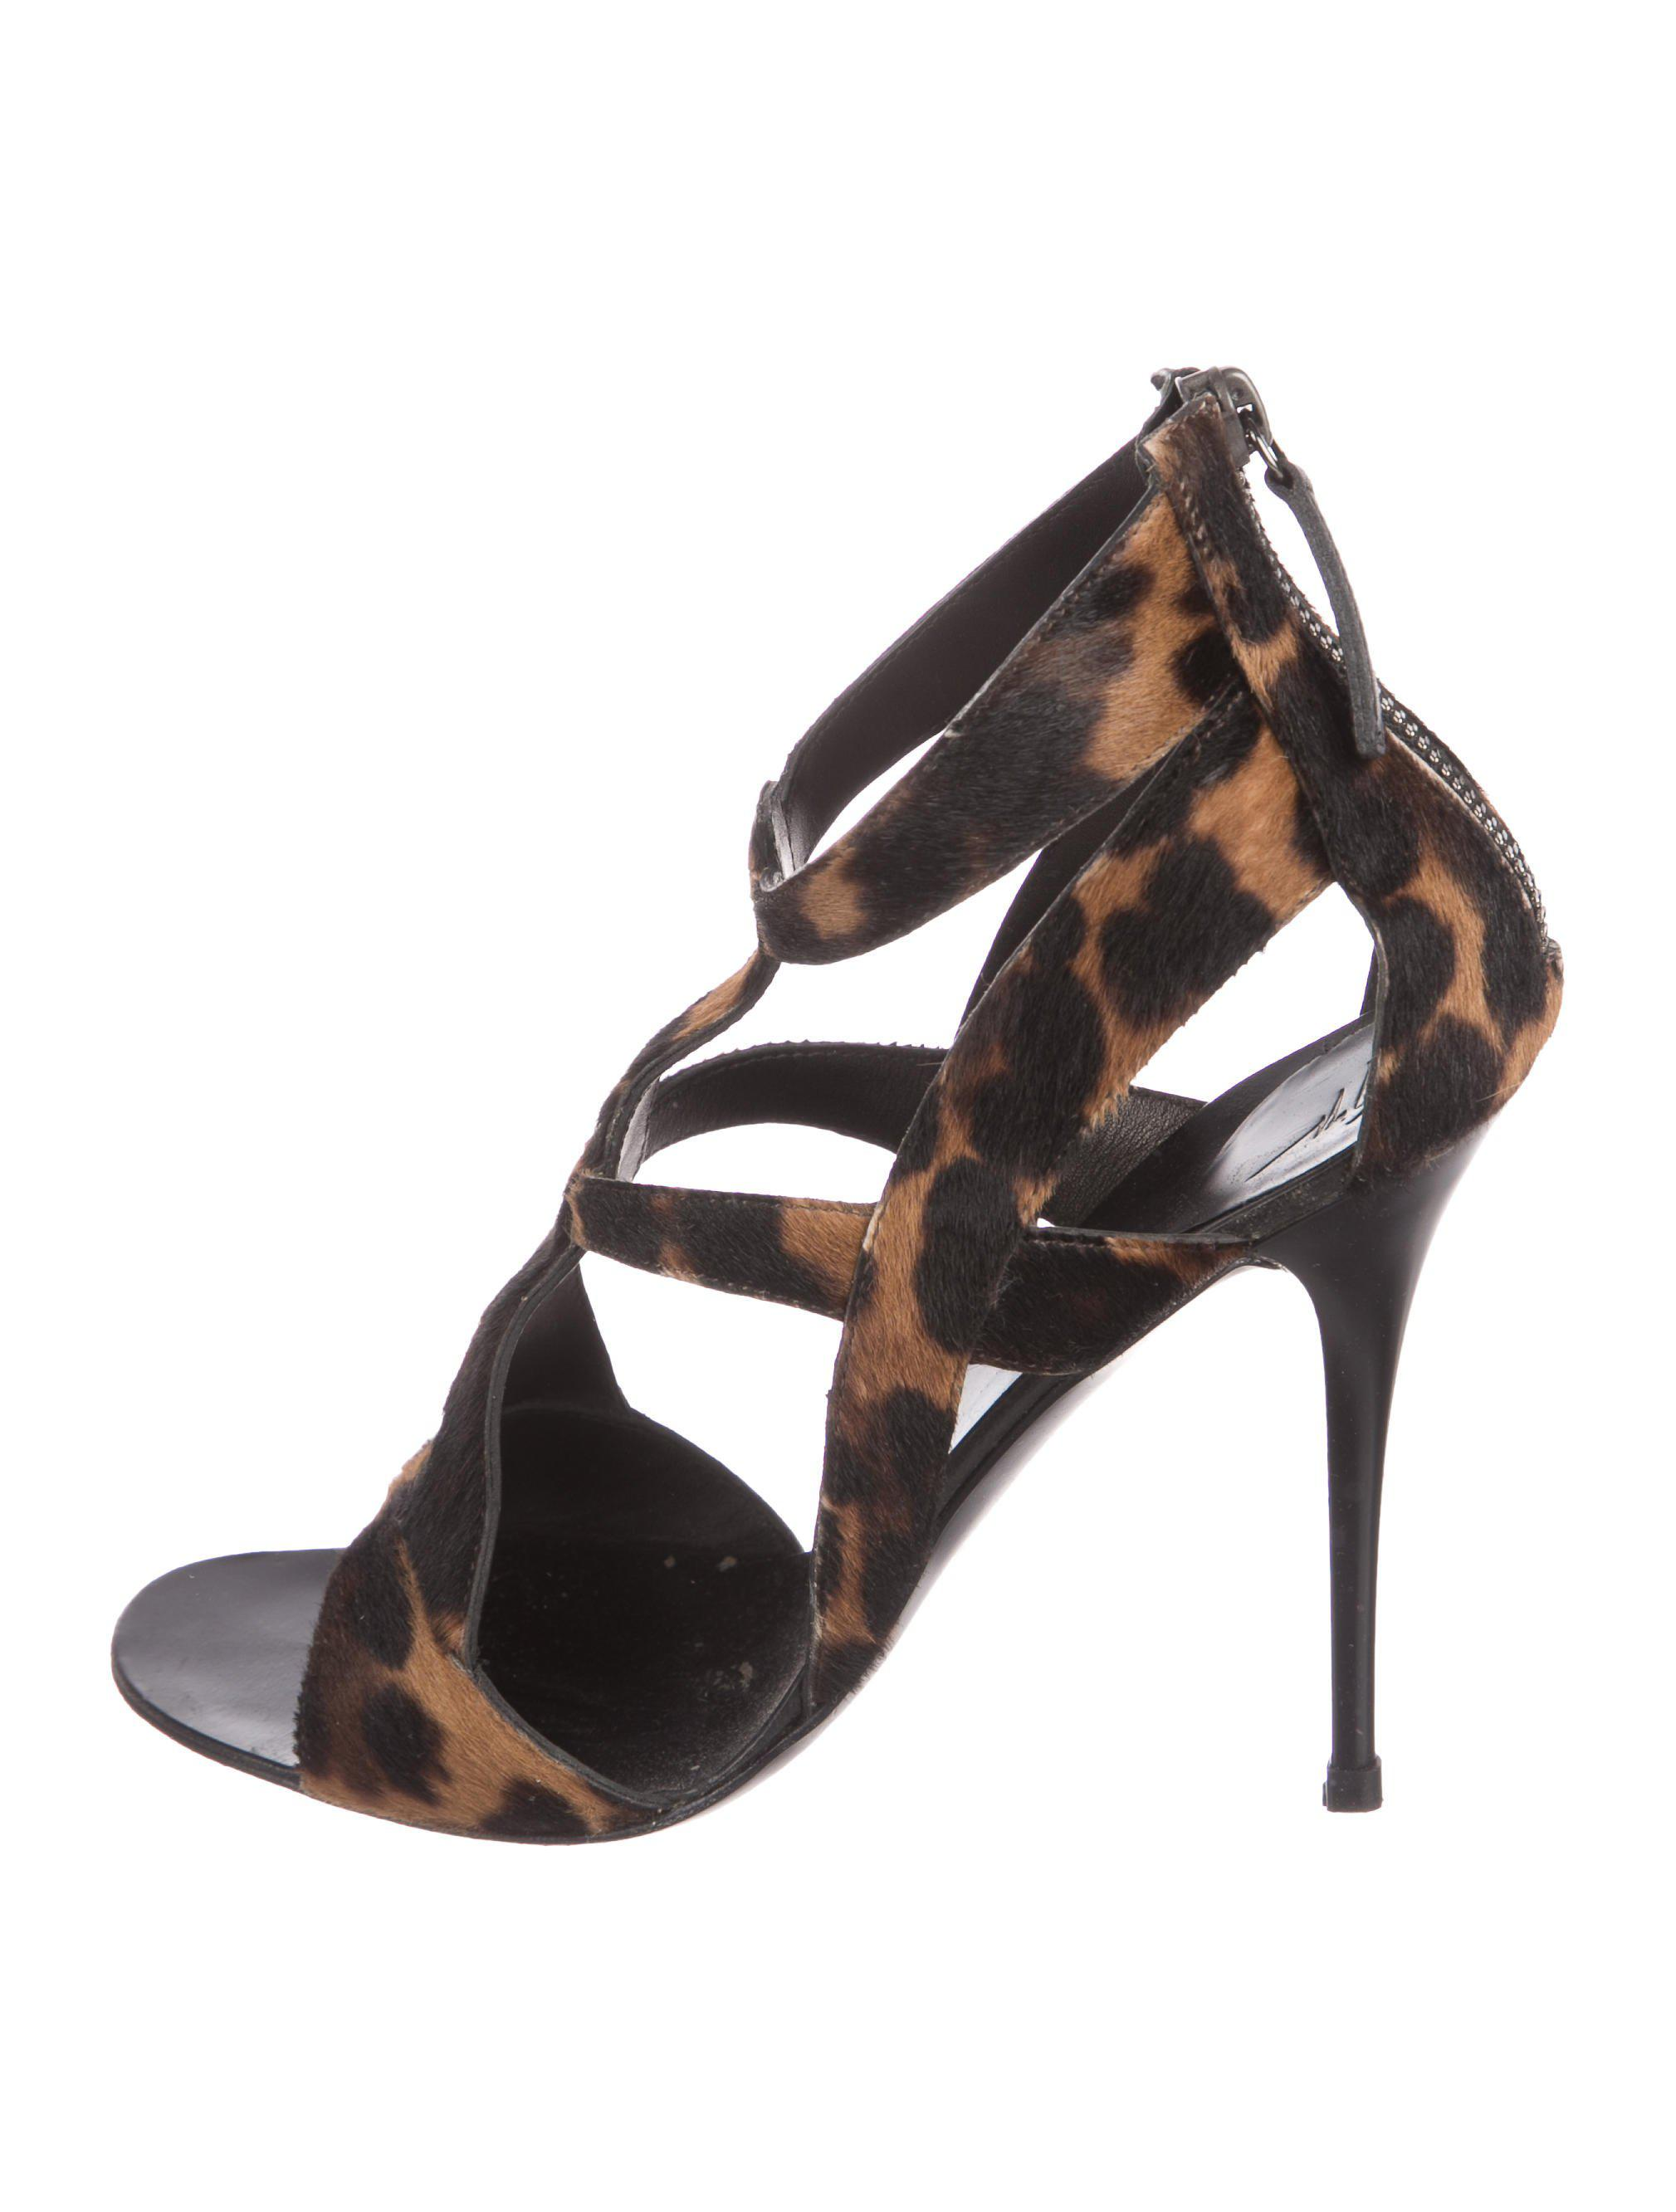 Giuseppe Zanotti Ponyhair Caged Sandals free shipping store clearance Manchester SEj3FYb